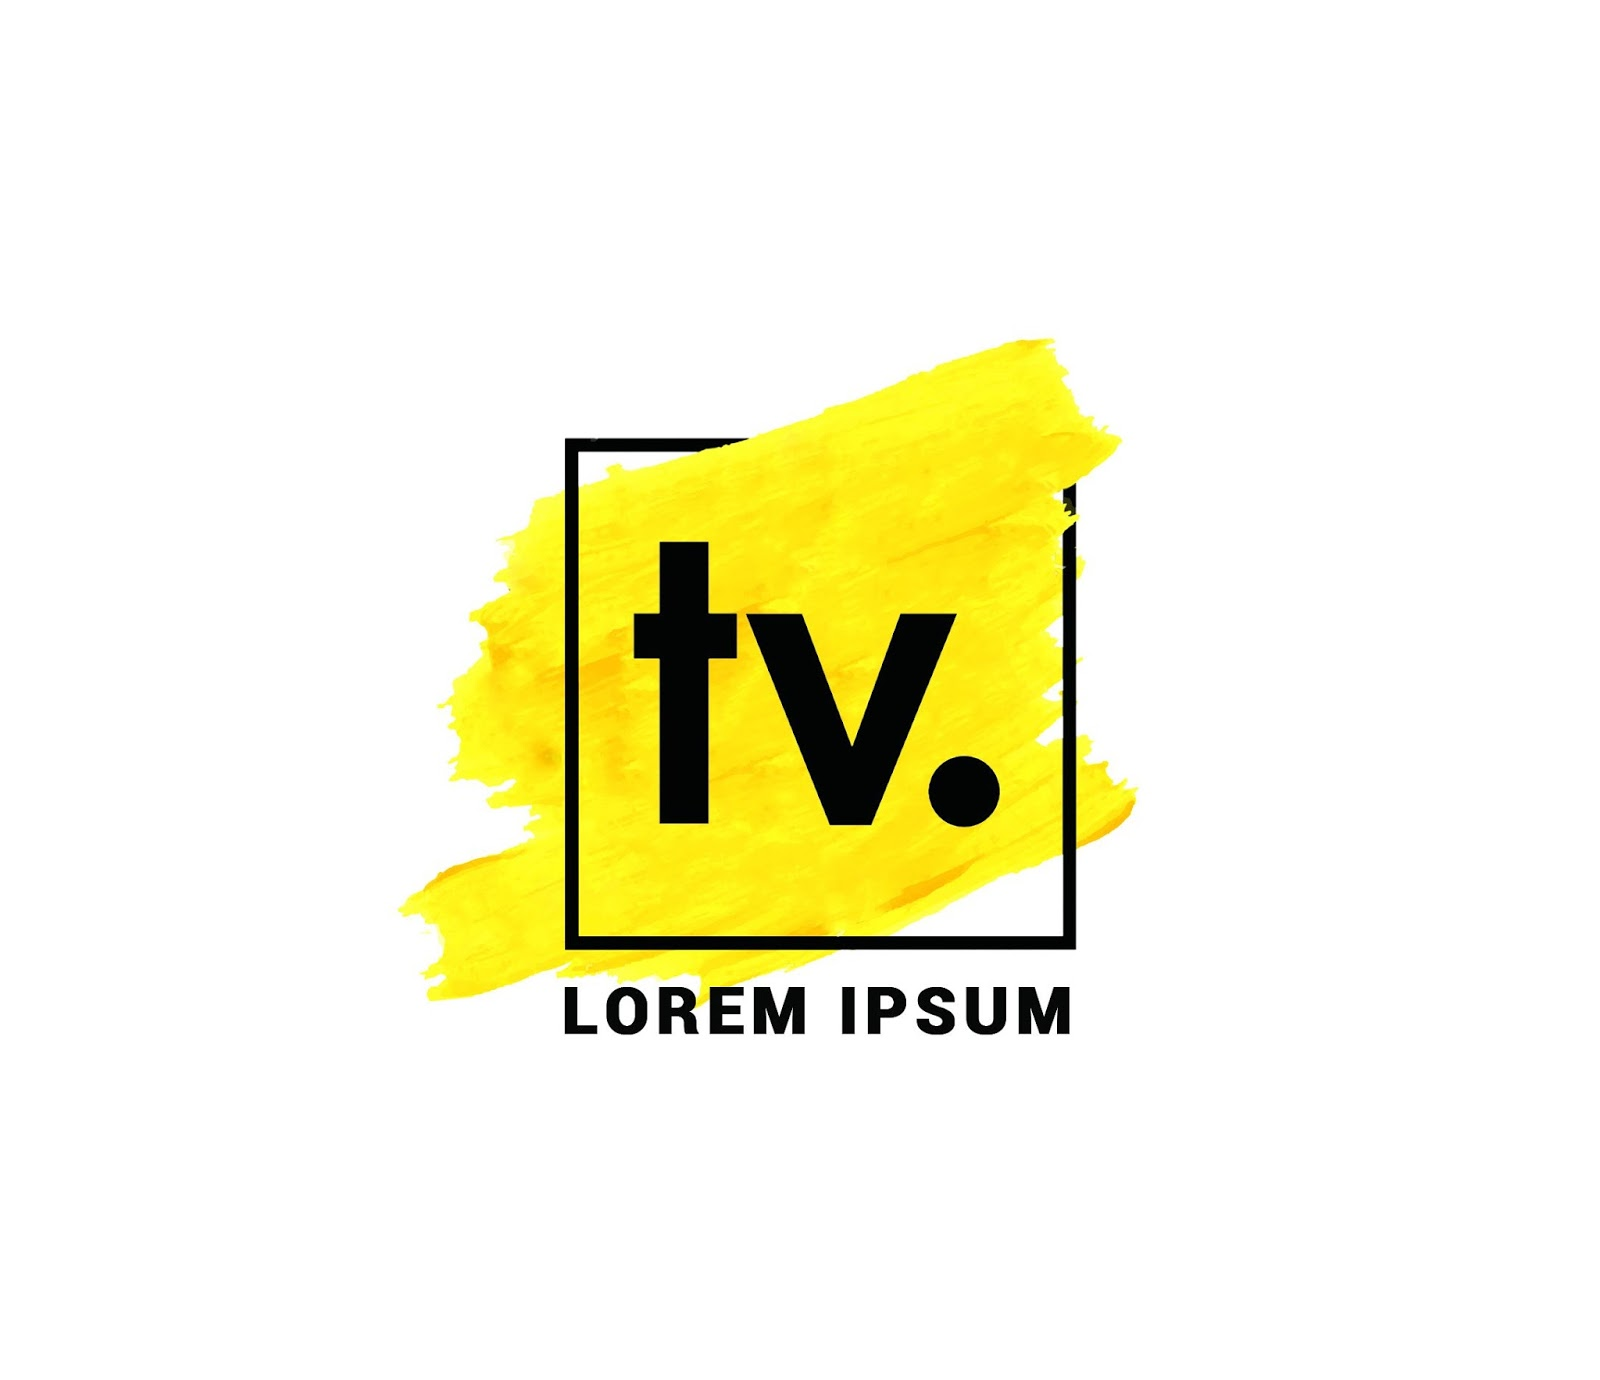 TV Channel Logo Design For Inspiration